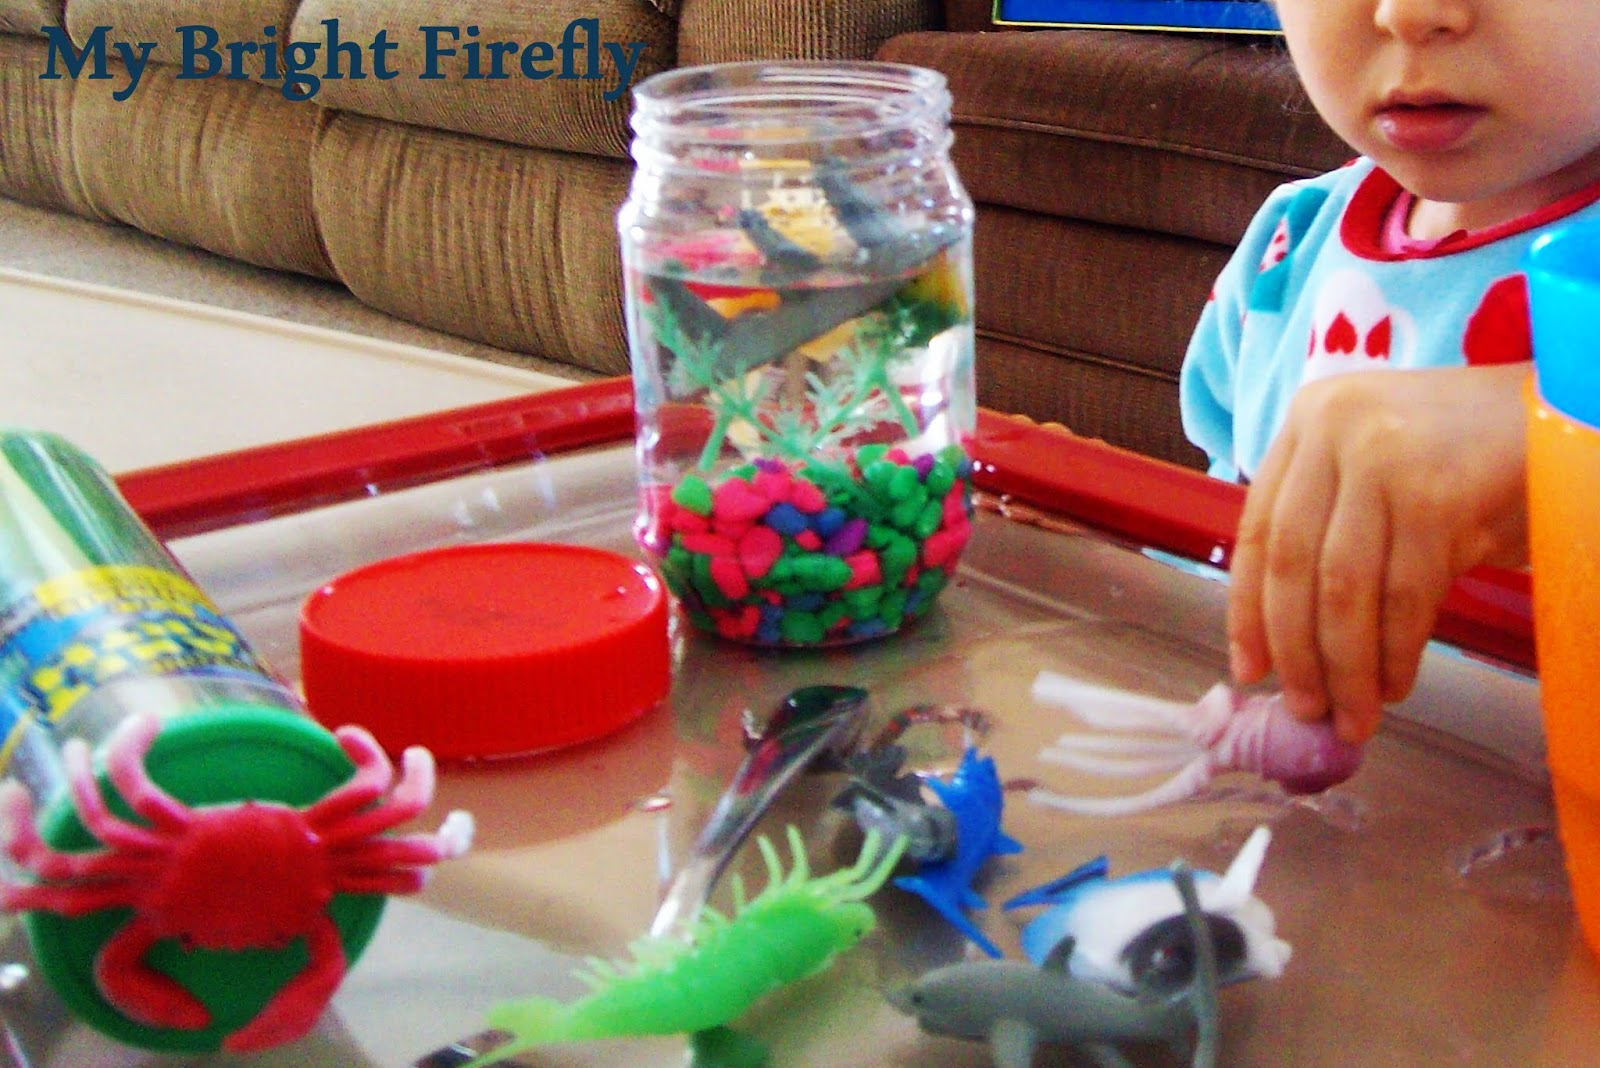 My Bright Firefly: Rainbow Fish Crafts and Play for Toddlers